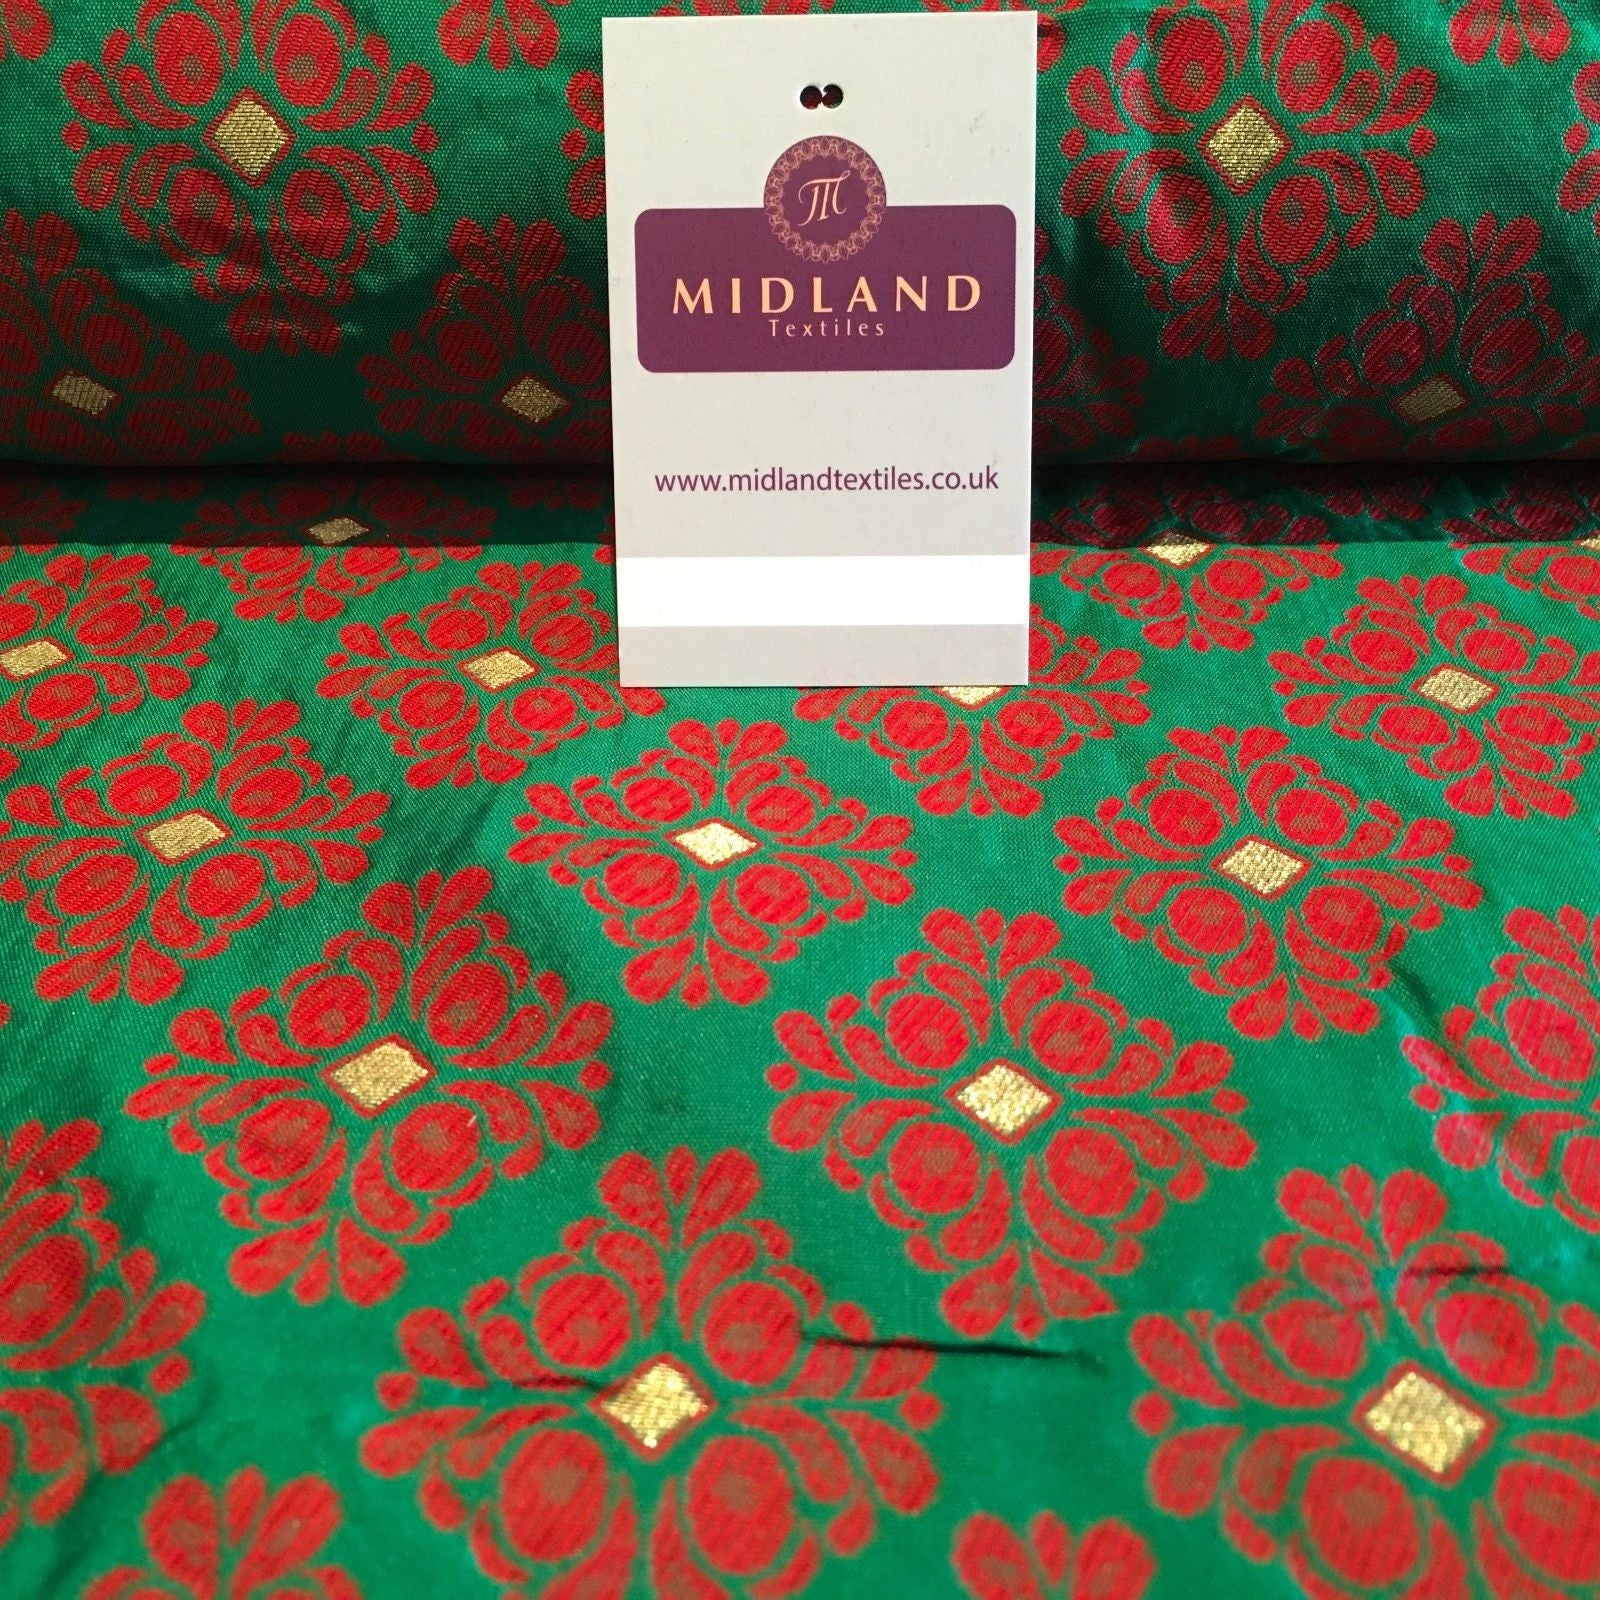 "Indian Floral Gold geometric Jacquard brocade waistcoat fabric 45""  M724 Mtex - Midland Textiles & Fabric"